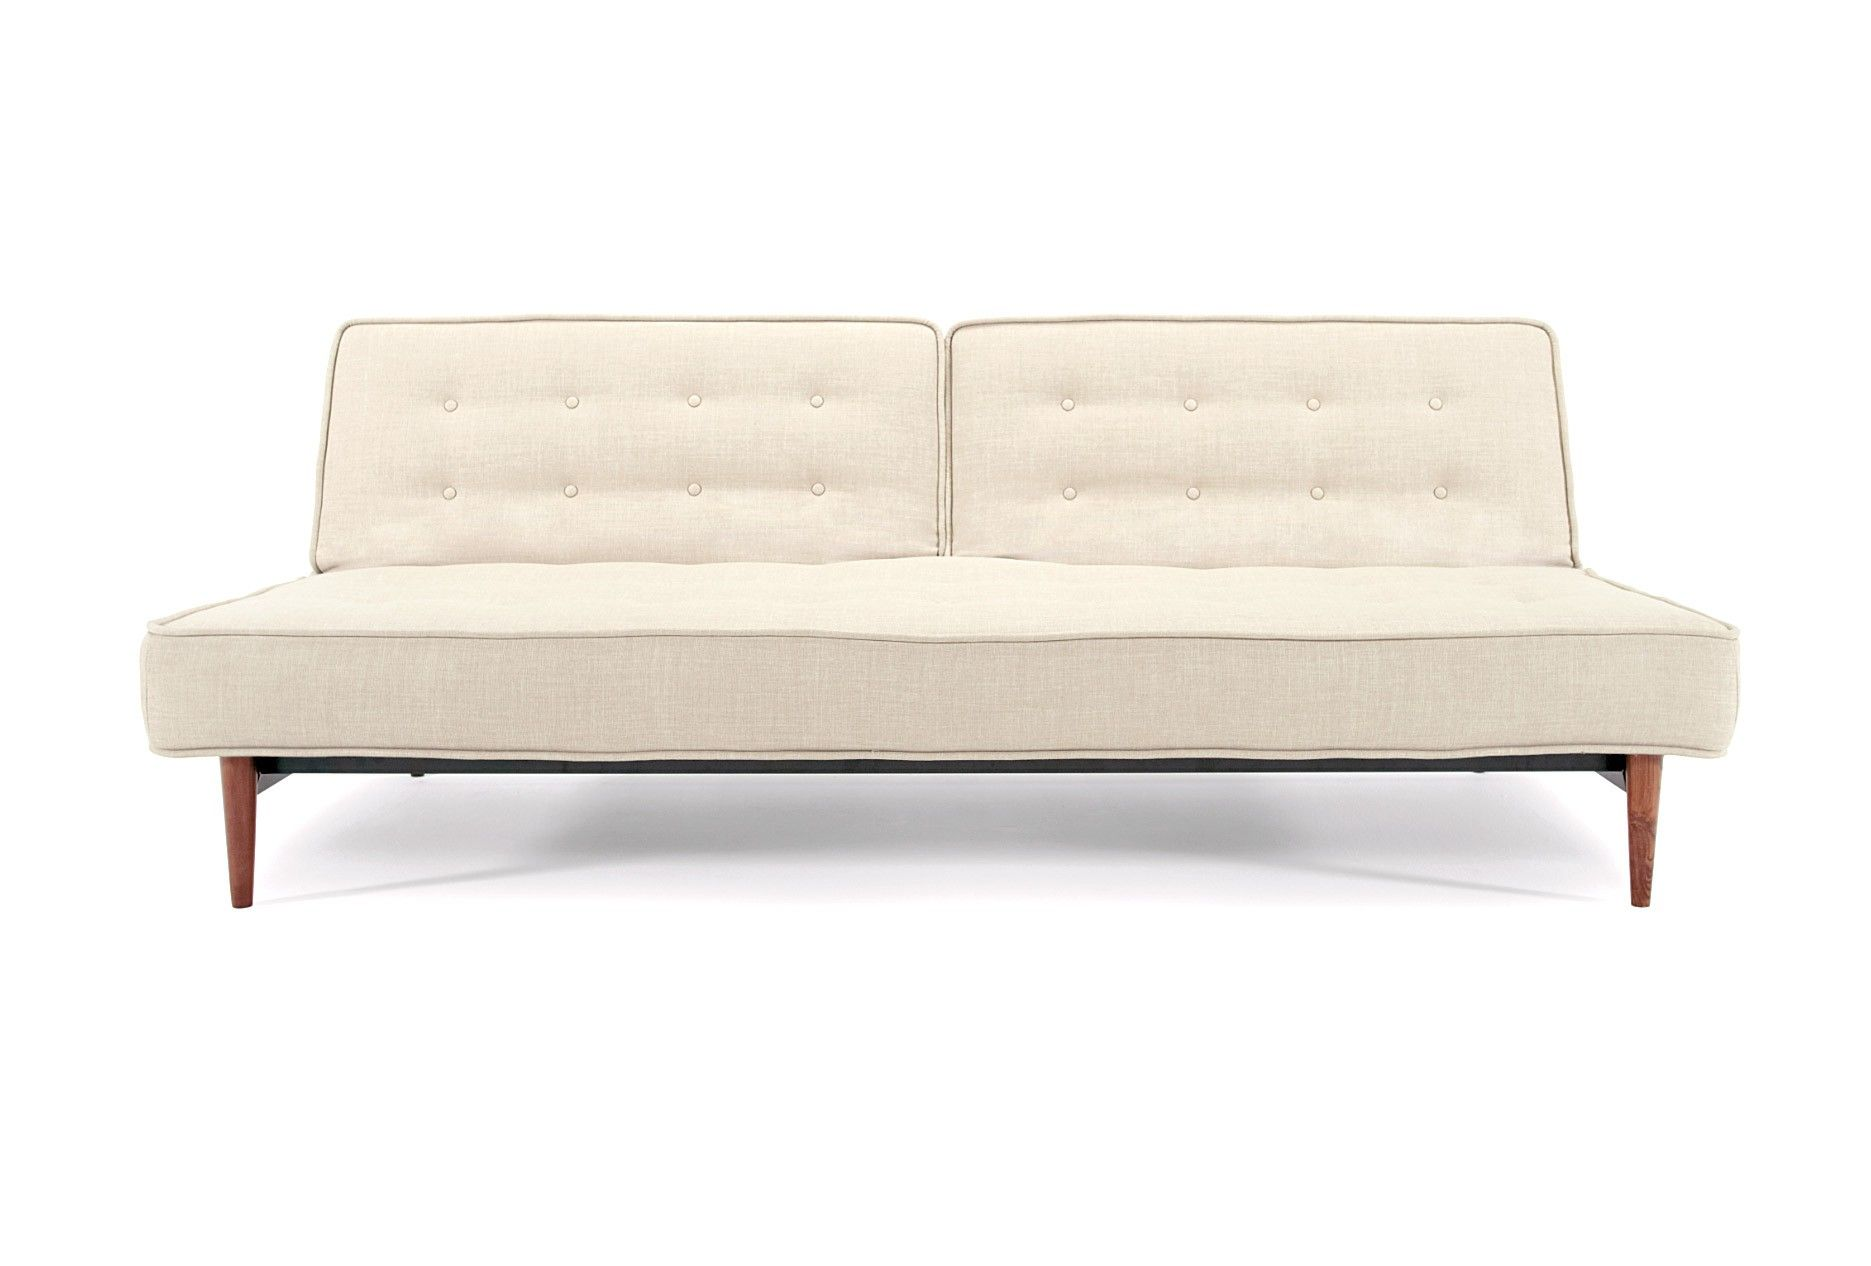 Sofa Bed Los Angeles Silenos Sofa Bed Viesso Home Pinterest Custom Furniture